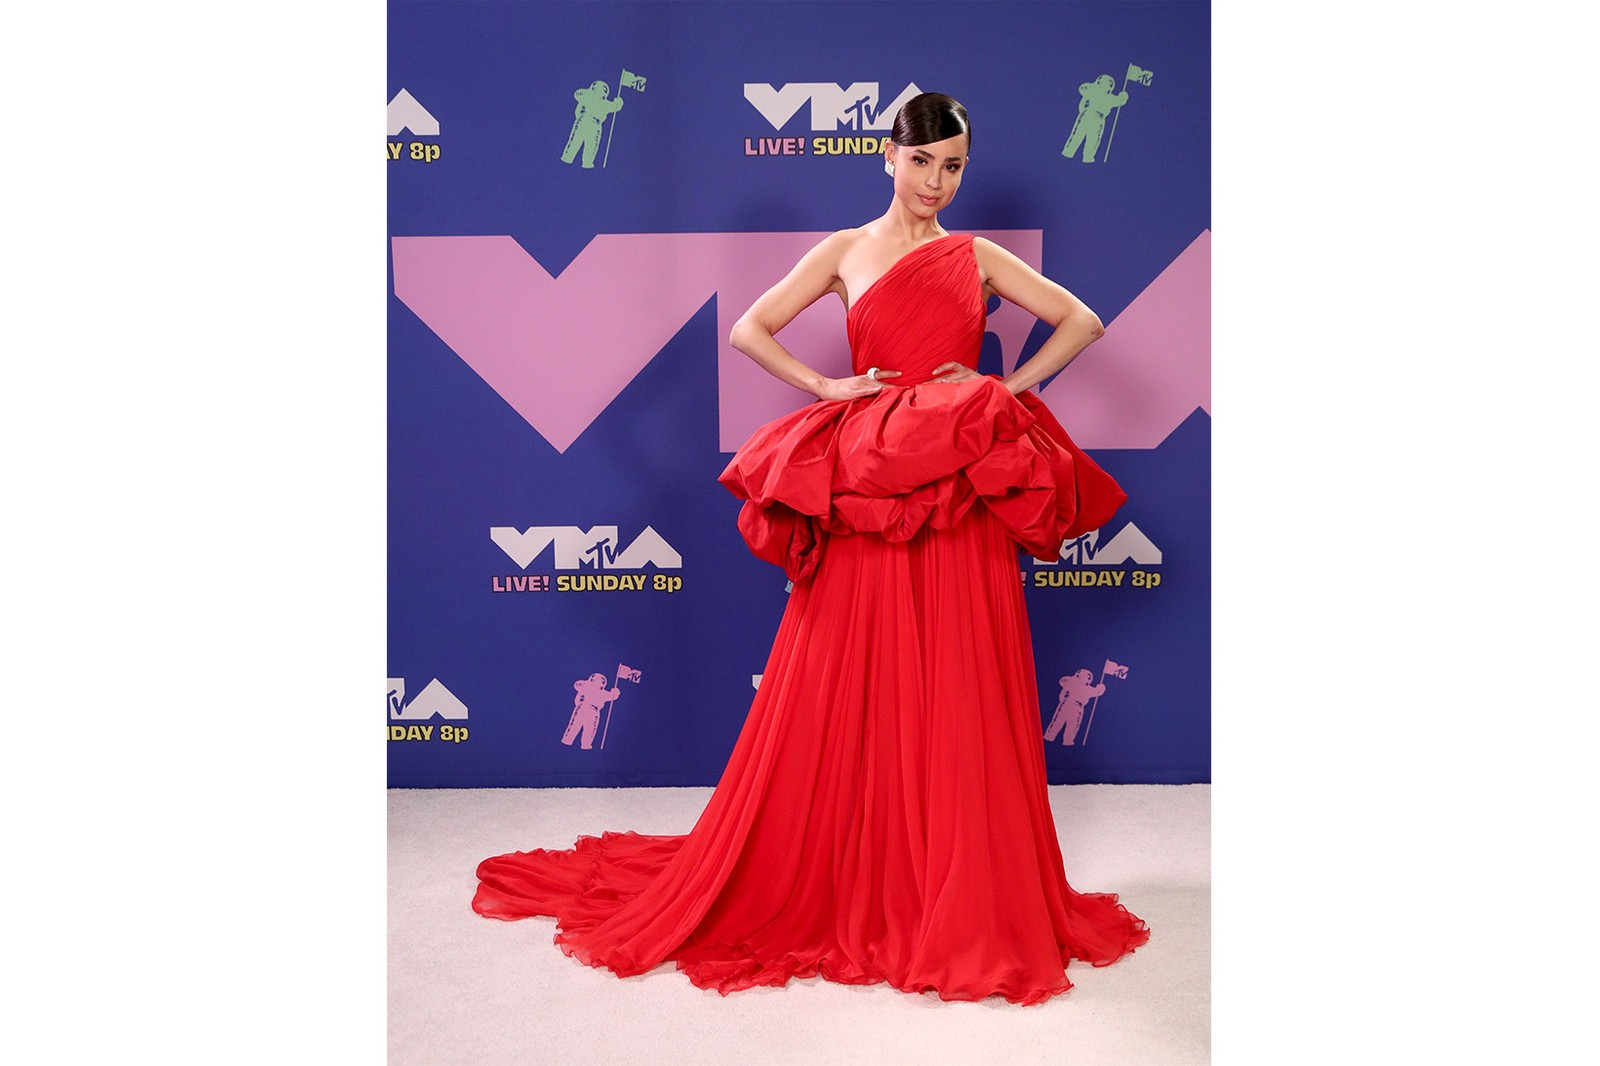 2020 mtv vmas red carpet best looks sofia carson red gown dress outfit